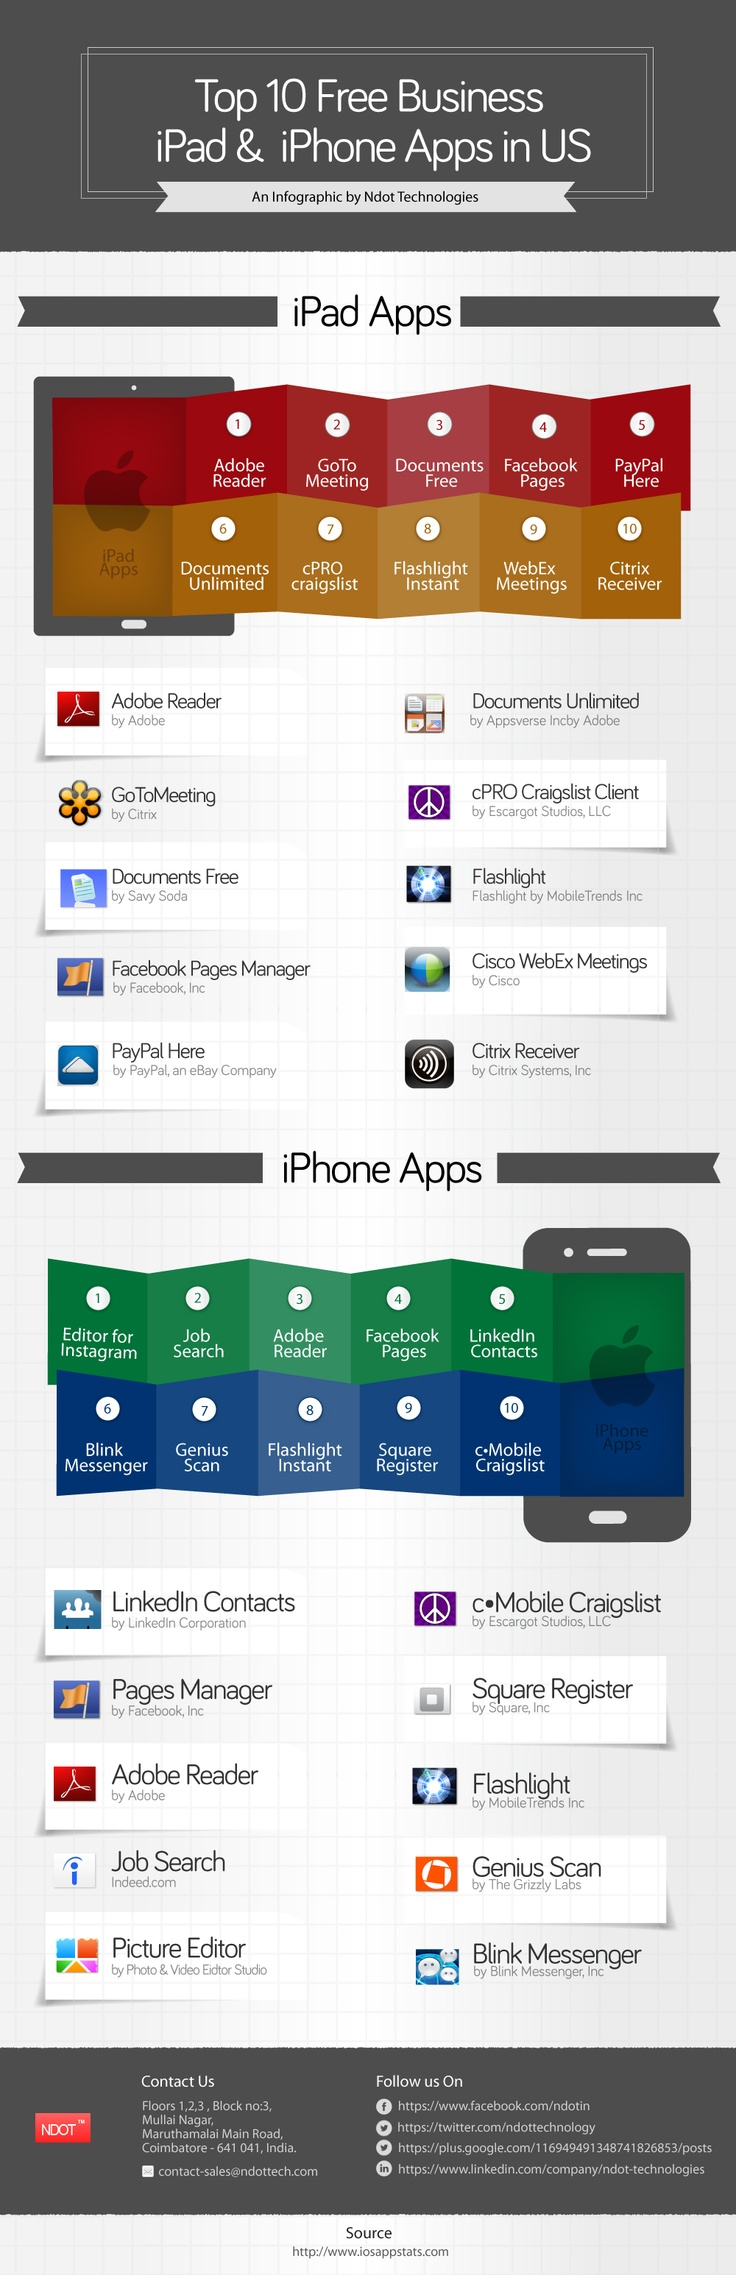 apps ios top united states business iphone